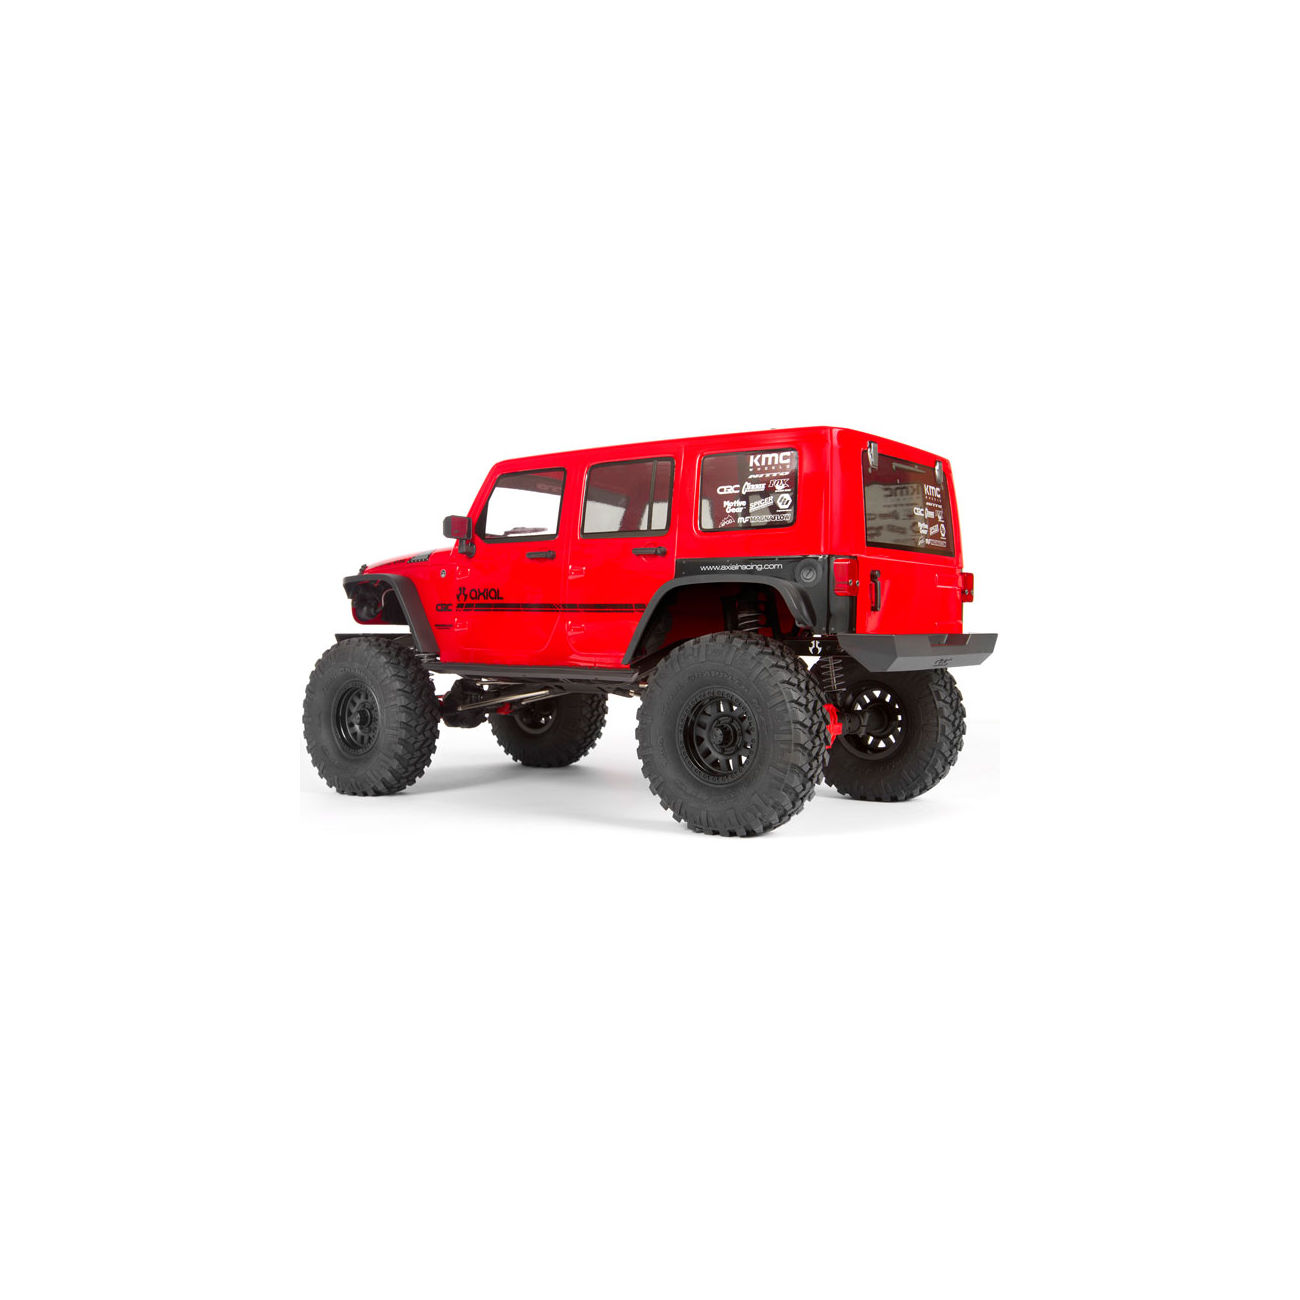 Axial 1:10 SCX10 II Jeep Wrangler Unlimited CRC 2017 4WD Scale-Truck 2,4 GHz RTR Set AX90060 1